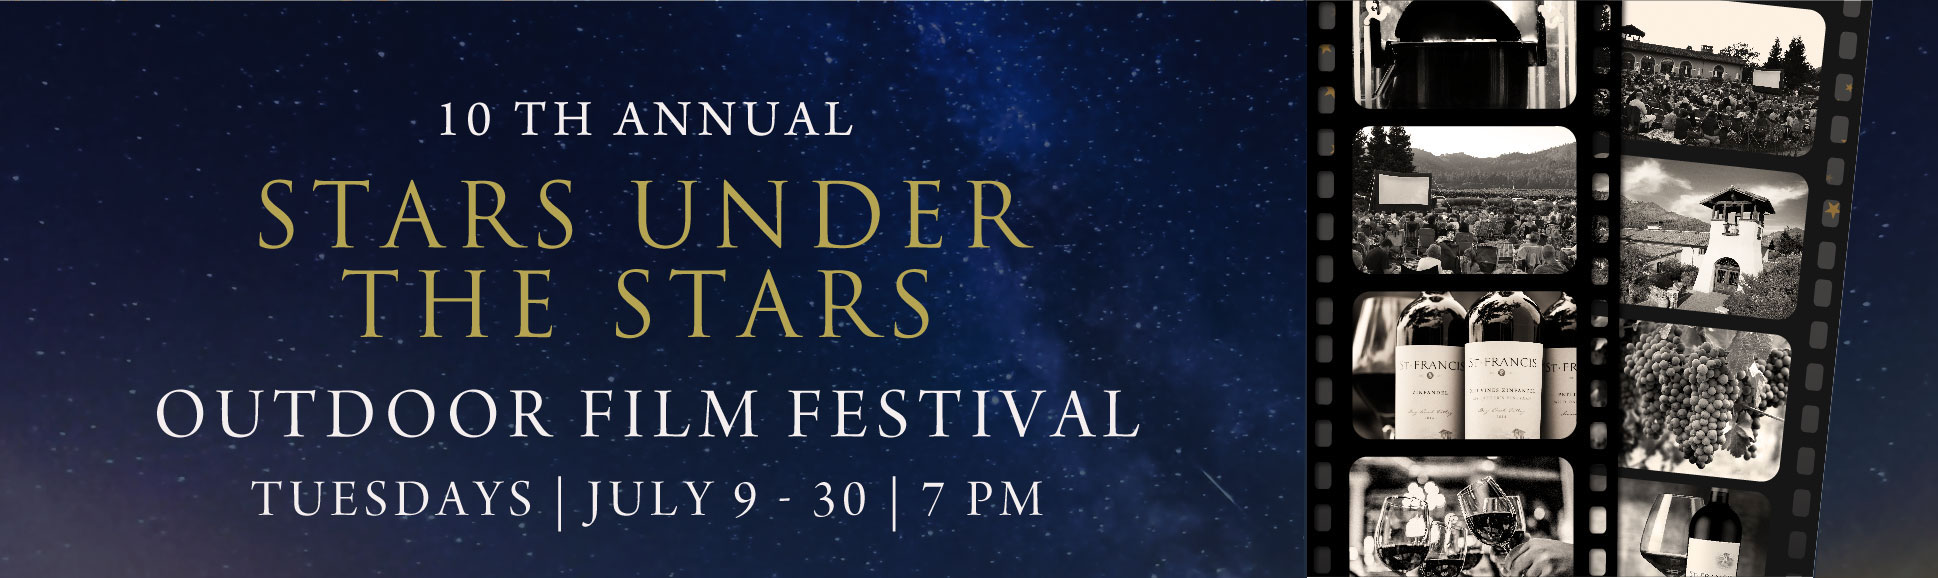 St Francis Stars Under the Stars - Summer Events in Sonoma.jpg